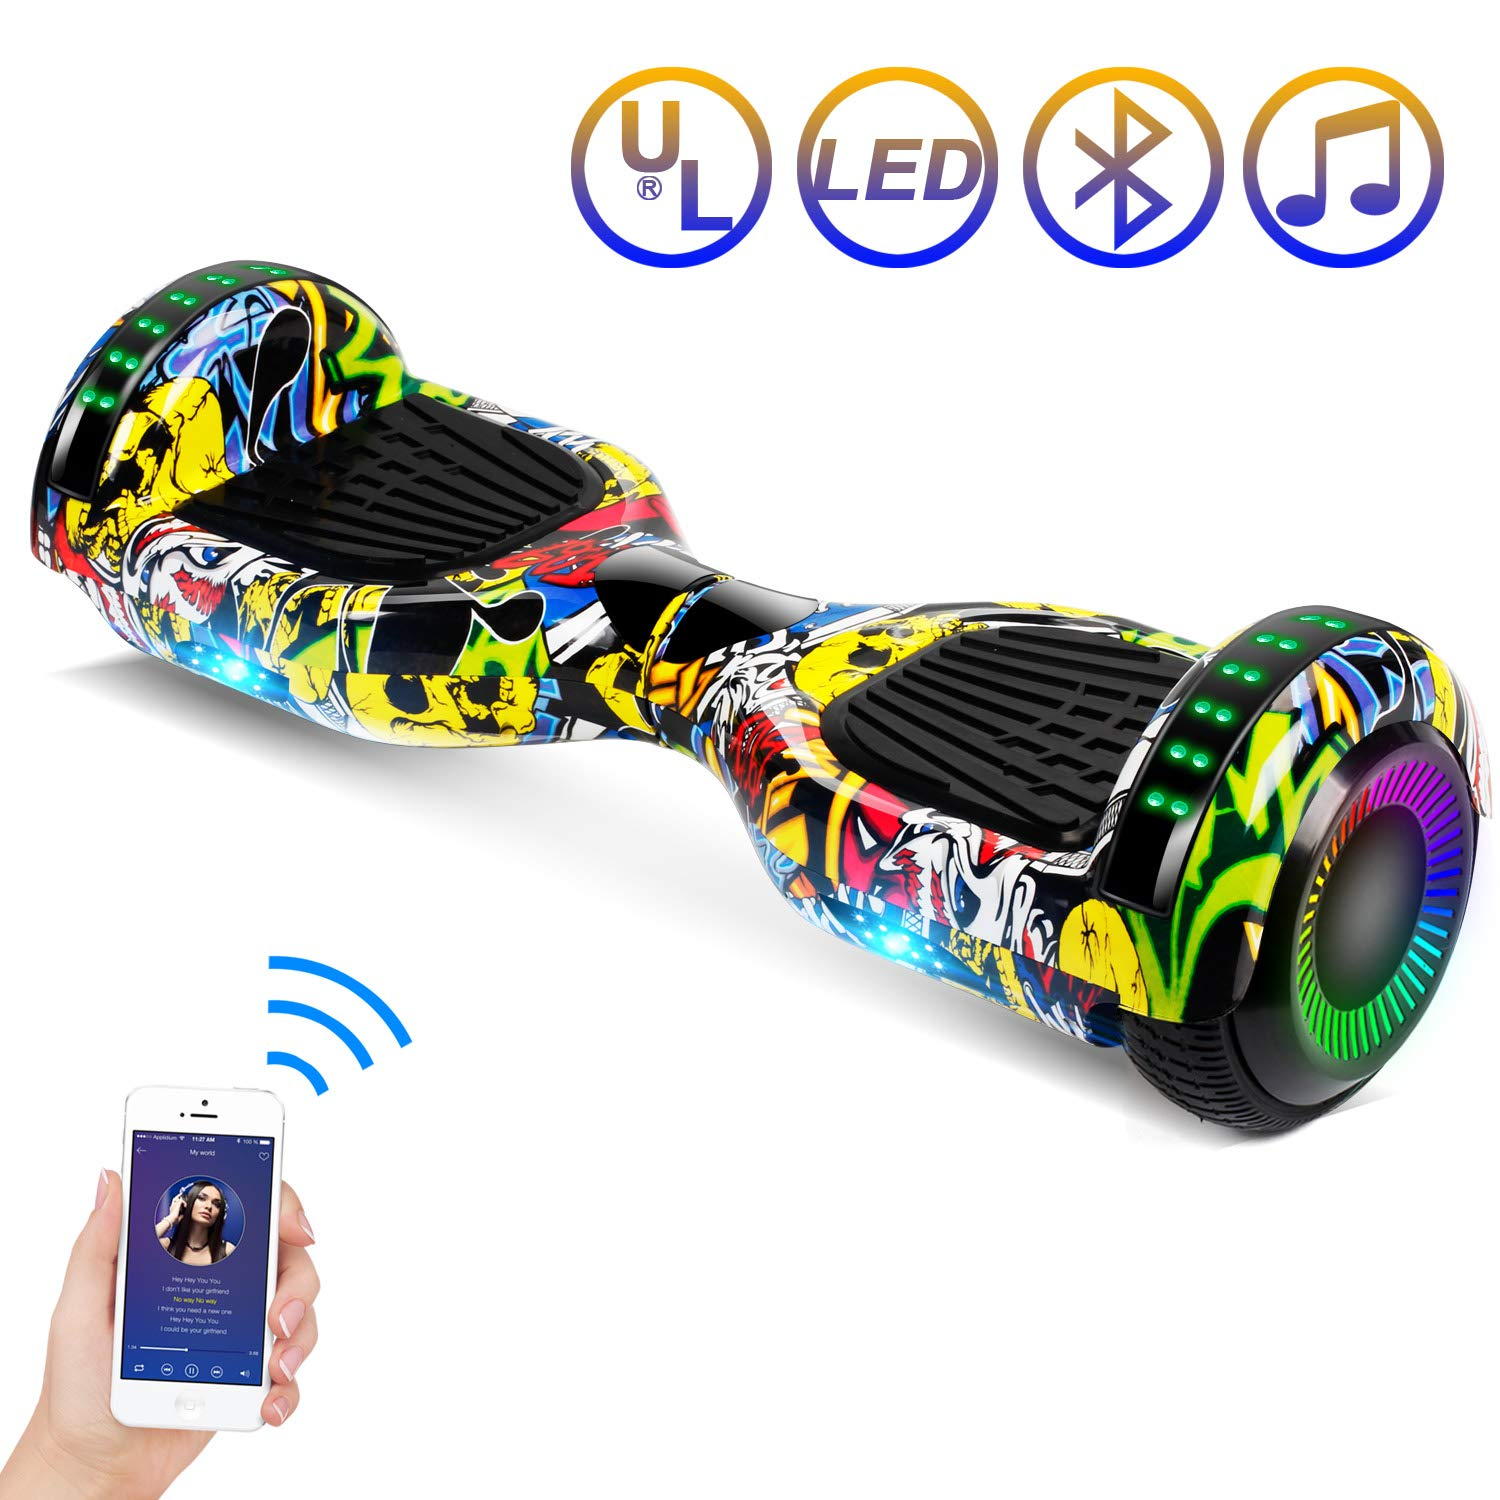 SISIGAD Hoverboard Self Balancing Scooter 6.5'' Two-Wheel Self Balancing Hoverboard with Bluetooth Speaker and LED Lights Electric Scooter for Adult Kids Gift UL 2272 Certified Fun Edition - Graffiti by SISIGAD